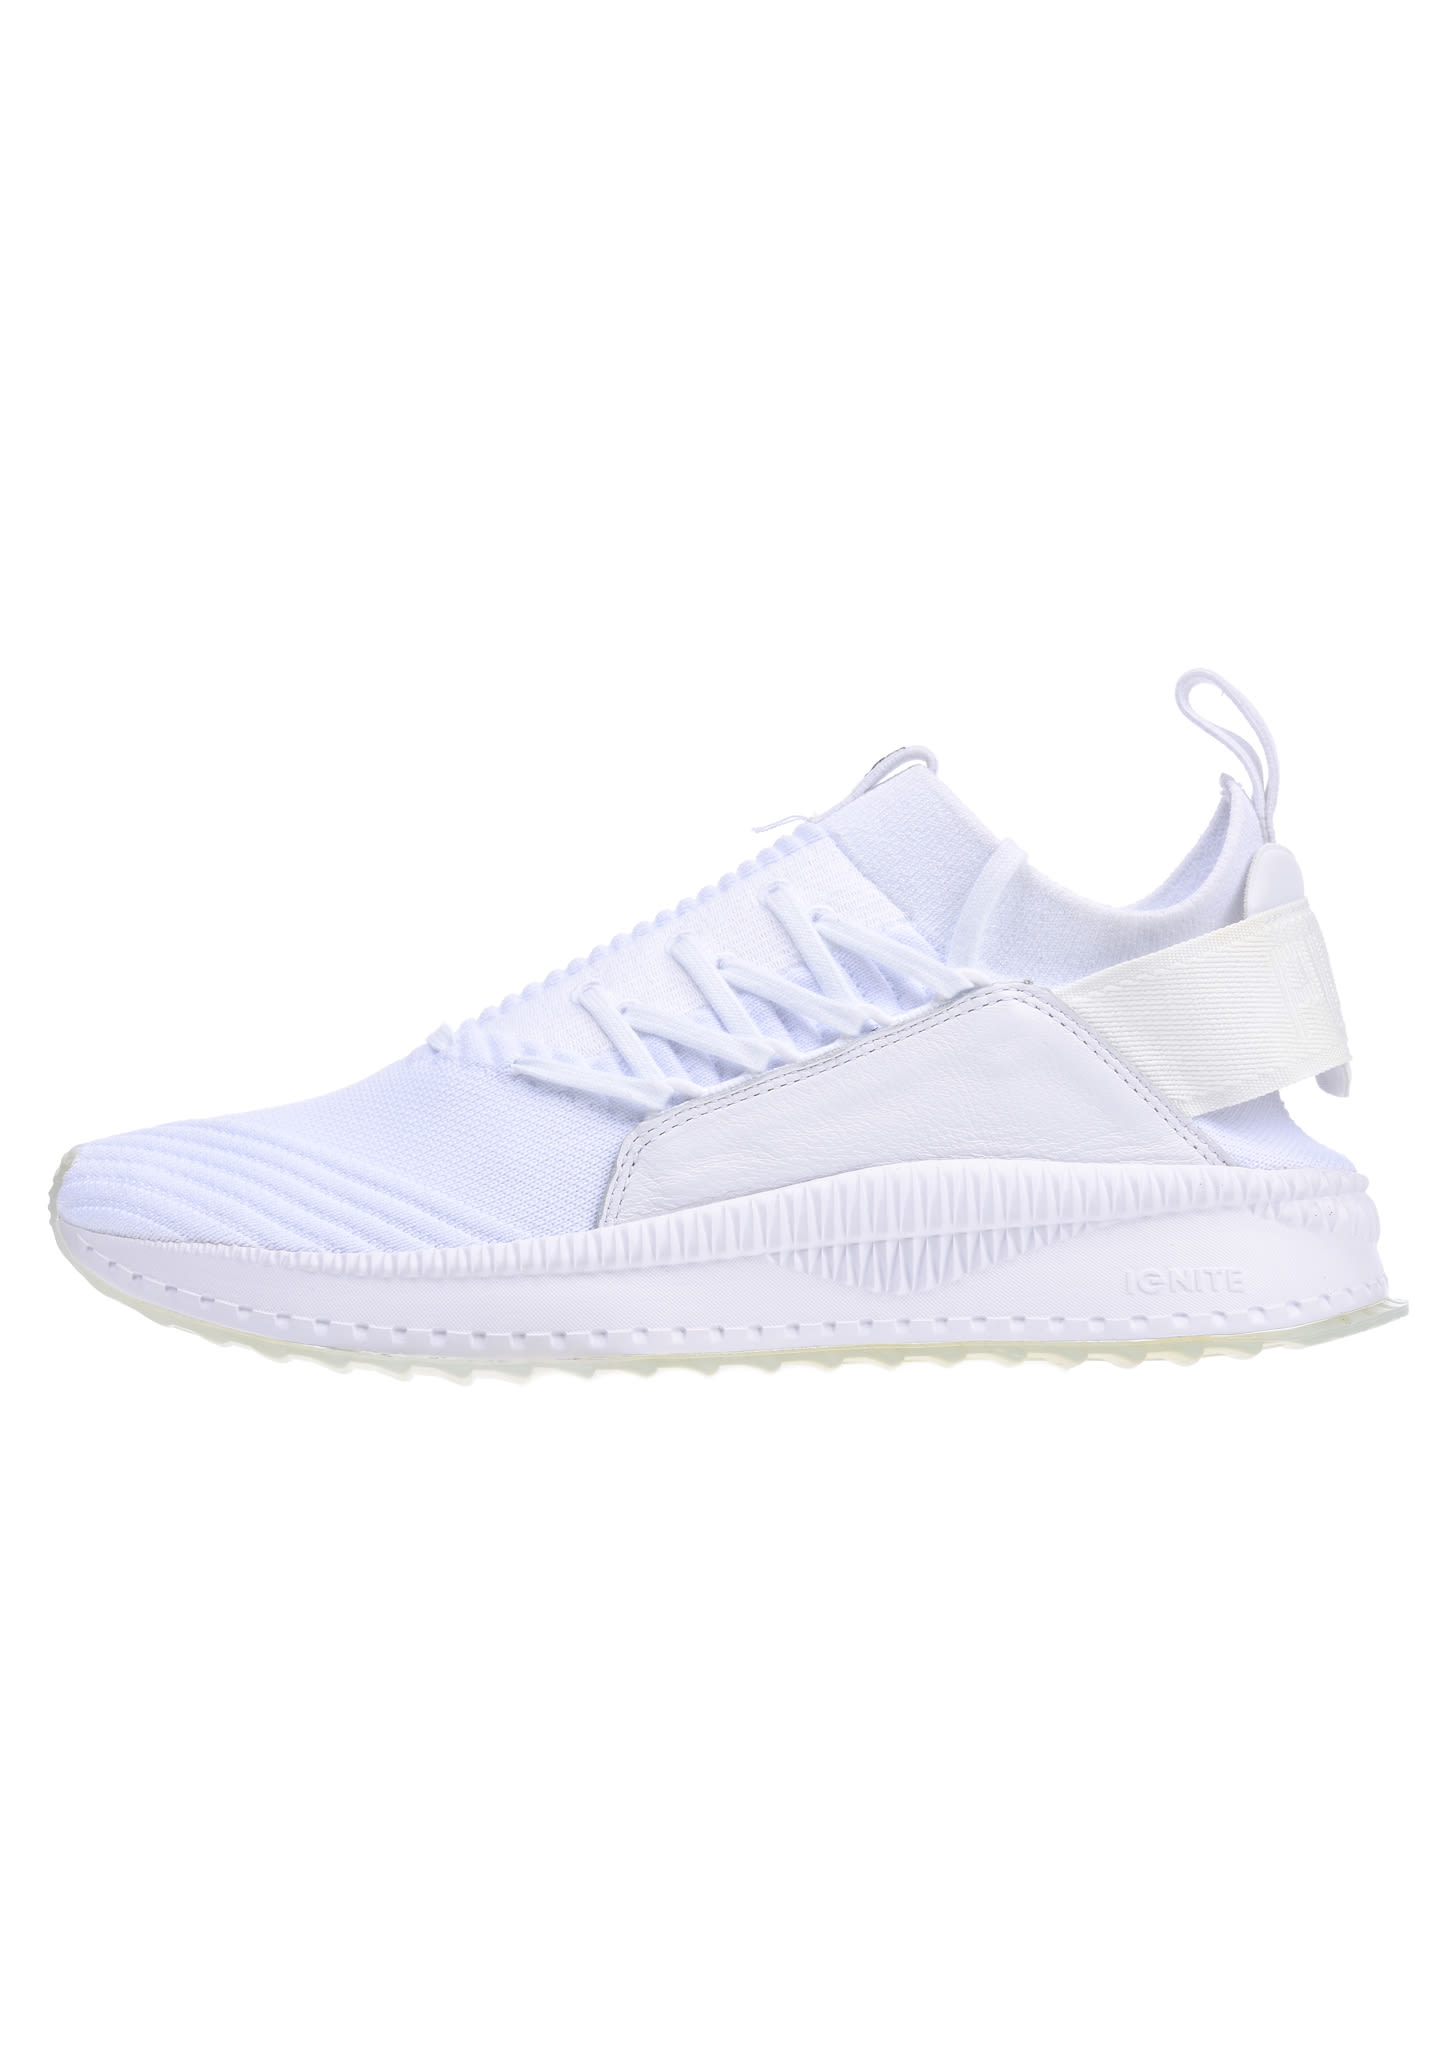 Puma Tsugi Jun - Sneakers for Men - White - Planet Sports 52ebeff3d